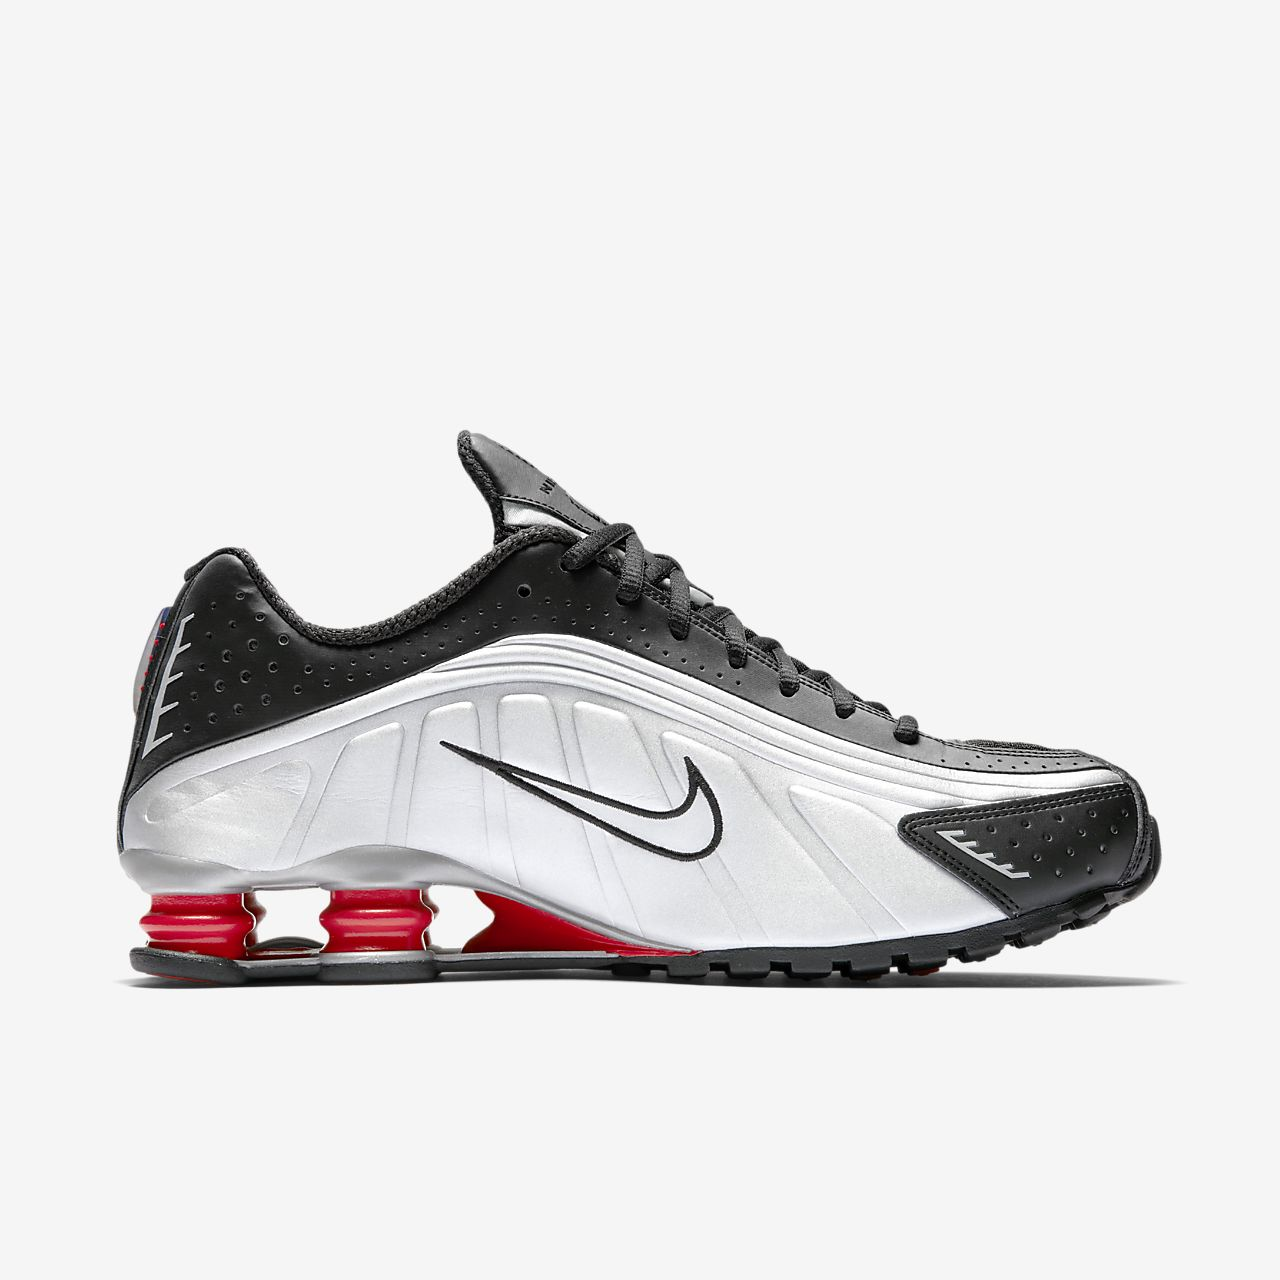 low priced 2fe8f 1880a Low Resolution Nike Shox R4 Shoe Nike Shox R4 Shoe